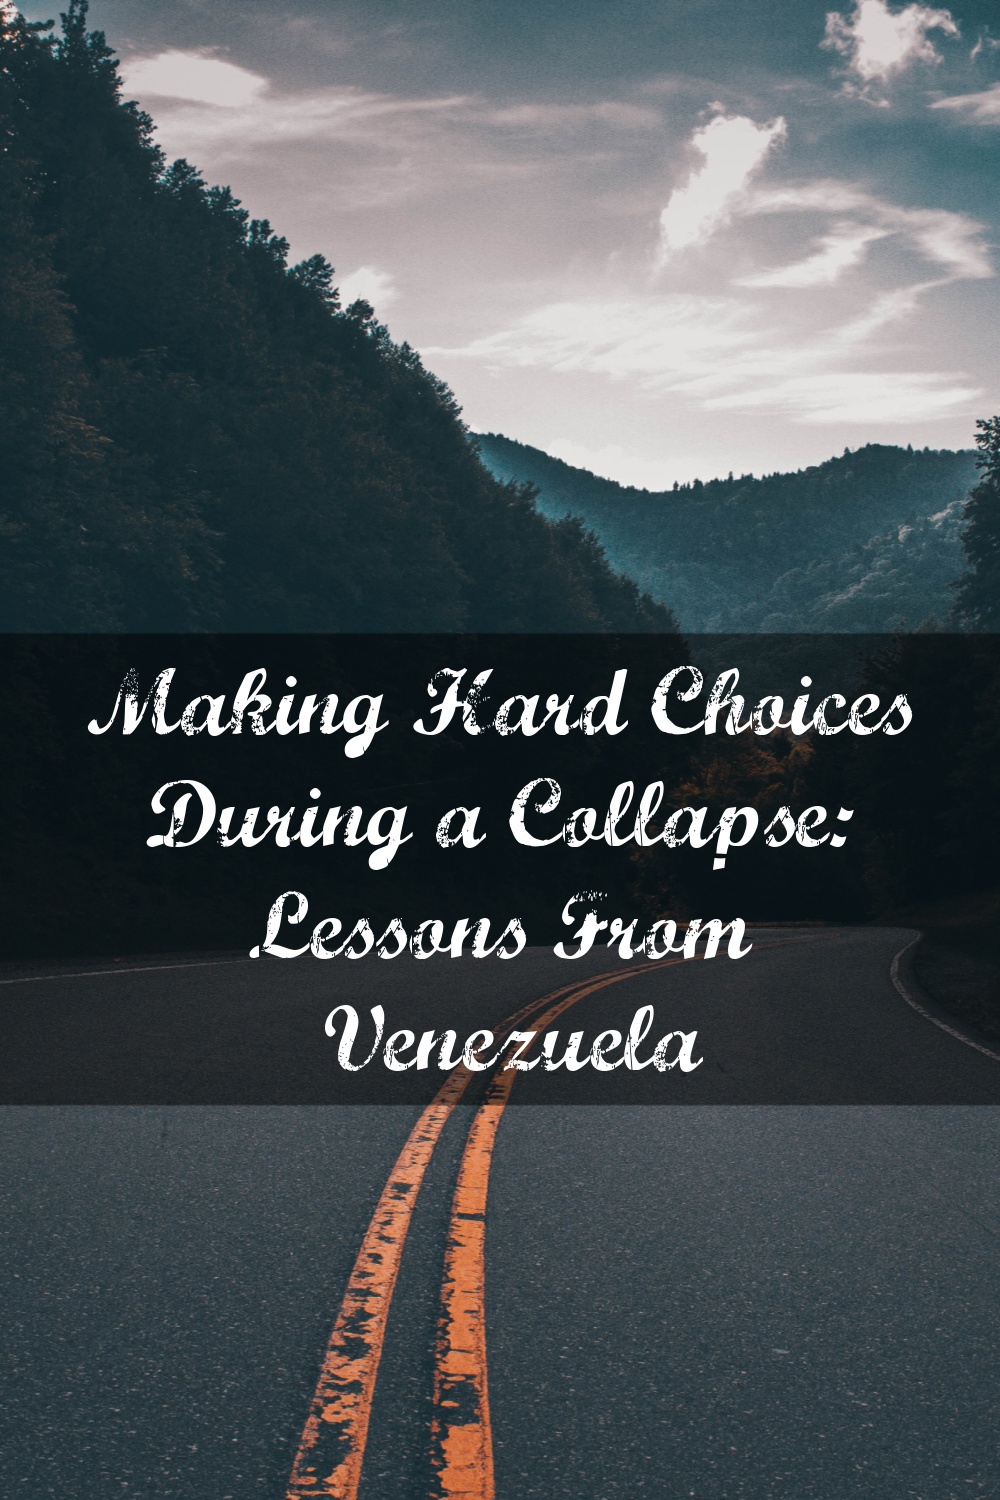 In this article, Jose discusses some of the difficult choices he had to make when Venezuela collapsed, and how he could have done things differently.